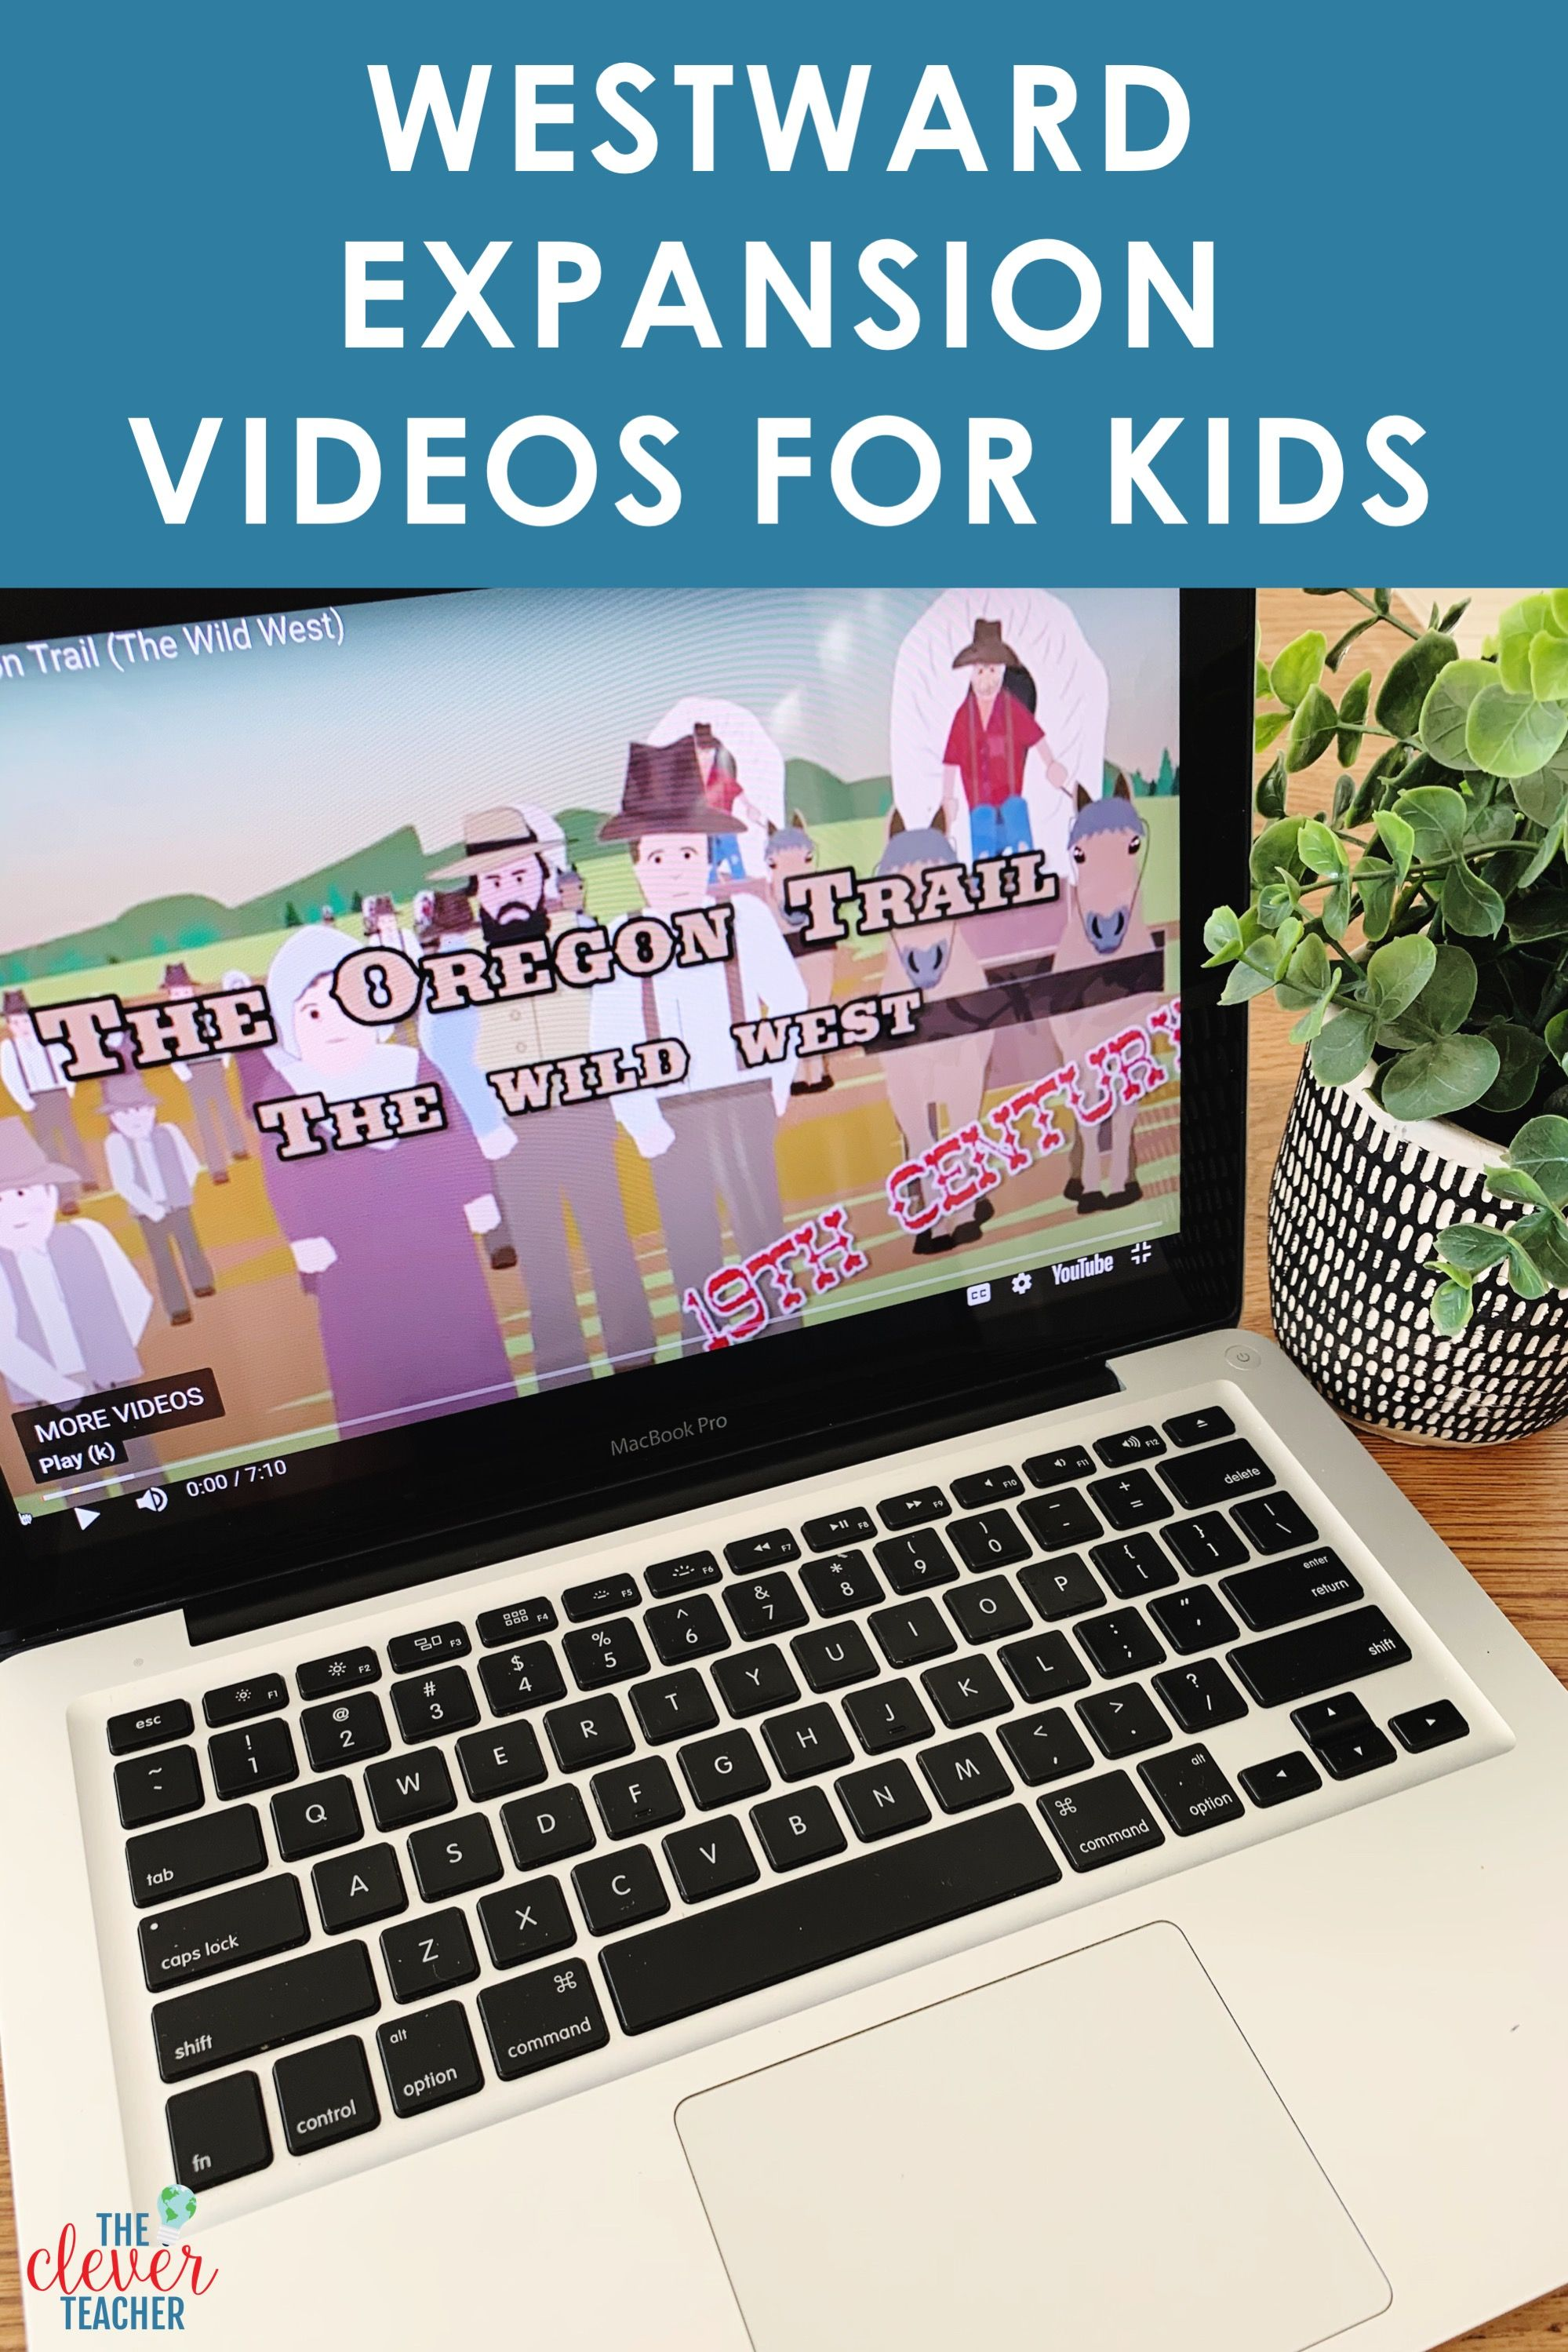 5 Westward Expansion Videos For Kids